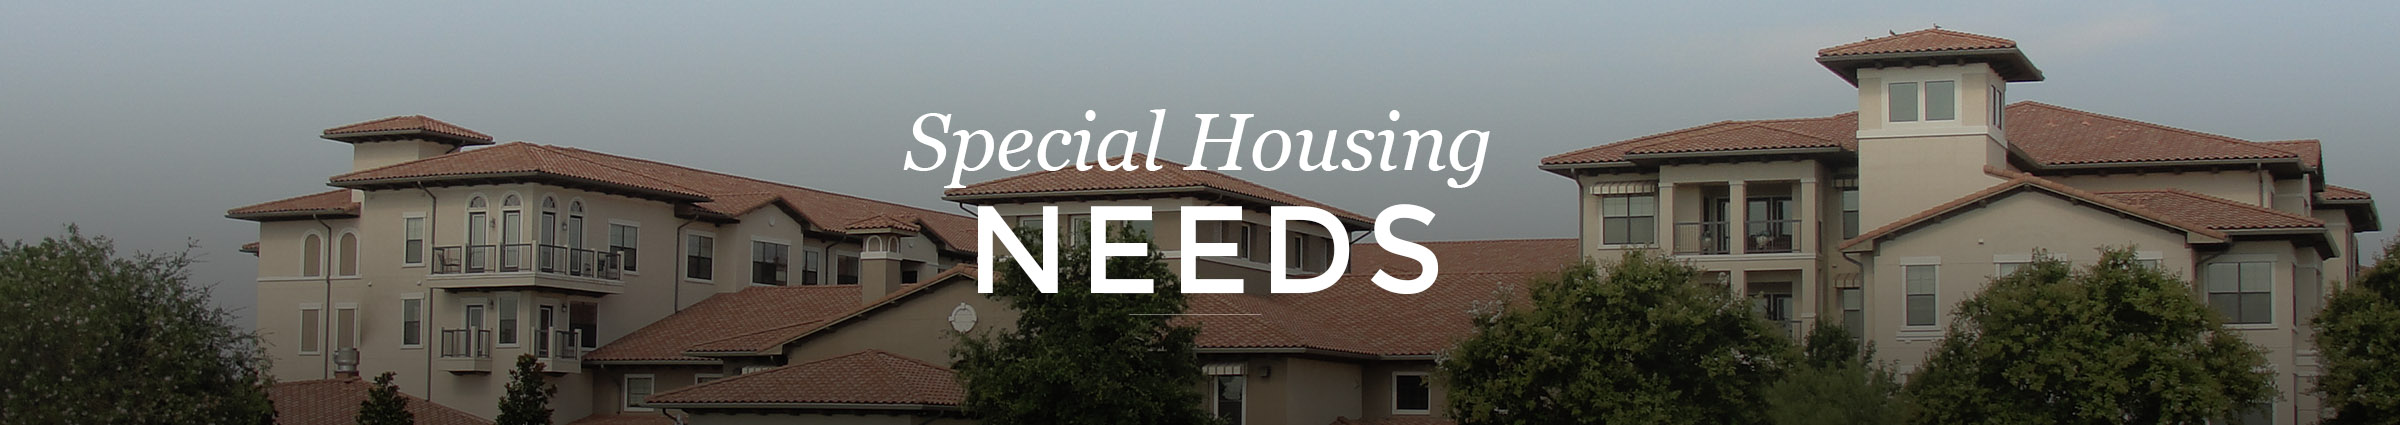 Special Housing Needs